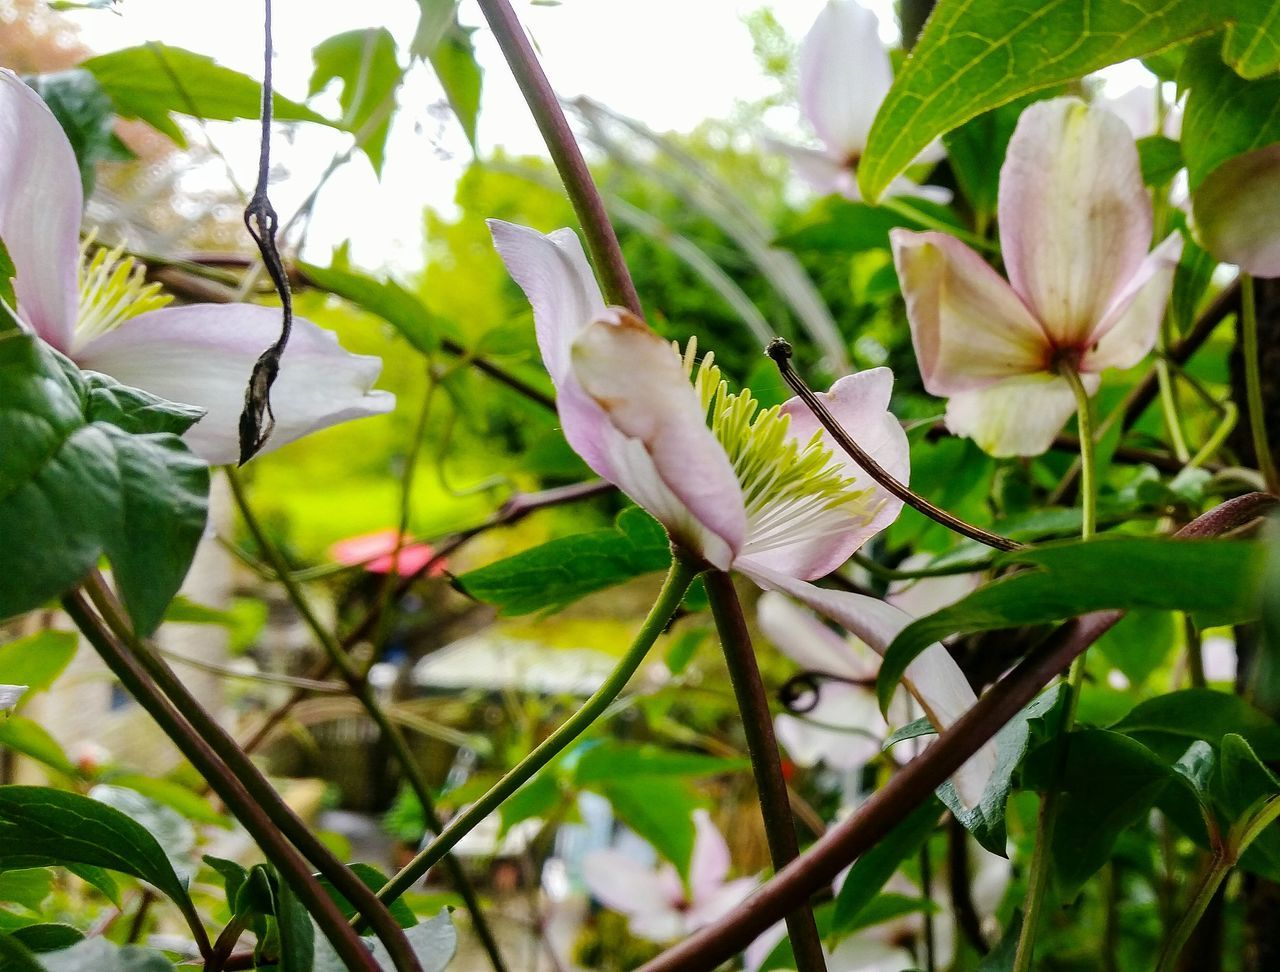 Clematis Petals Pink Color Clematis Vine Petal Petals Of Flowers Clematisphotography Petals Close Up Bud Clematis Flower Eyem Nature White Color Fragility EyeEm Nature Lover Flowerphotography Countrylandscapes Springtime Botany, Freshness Rainy Day Petal, Petals, Leaf, Leaves, Beauty In Nature Conservation Still Life Photography Cream Colored Flower Head